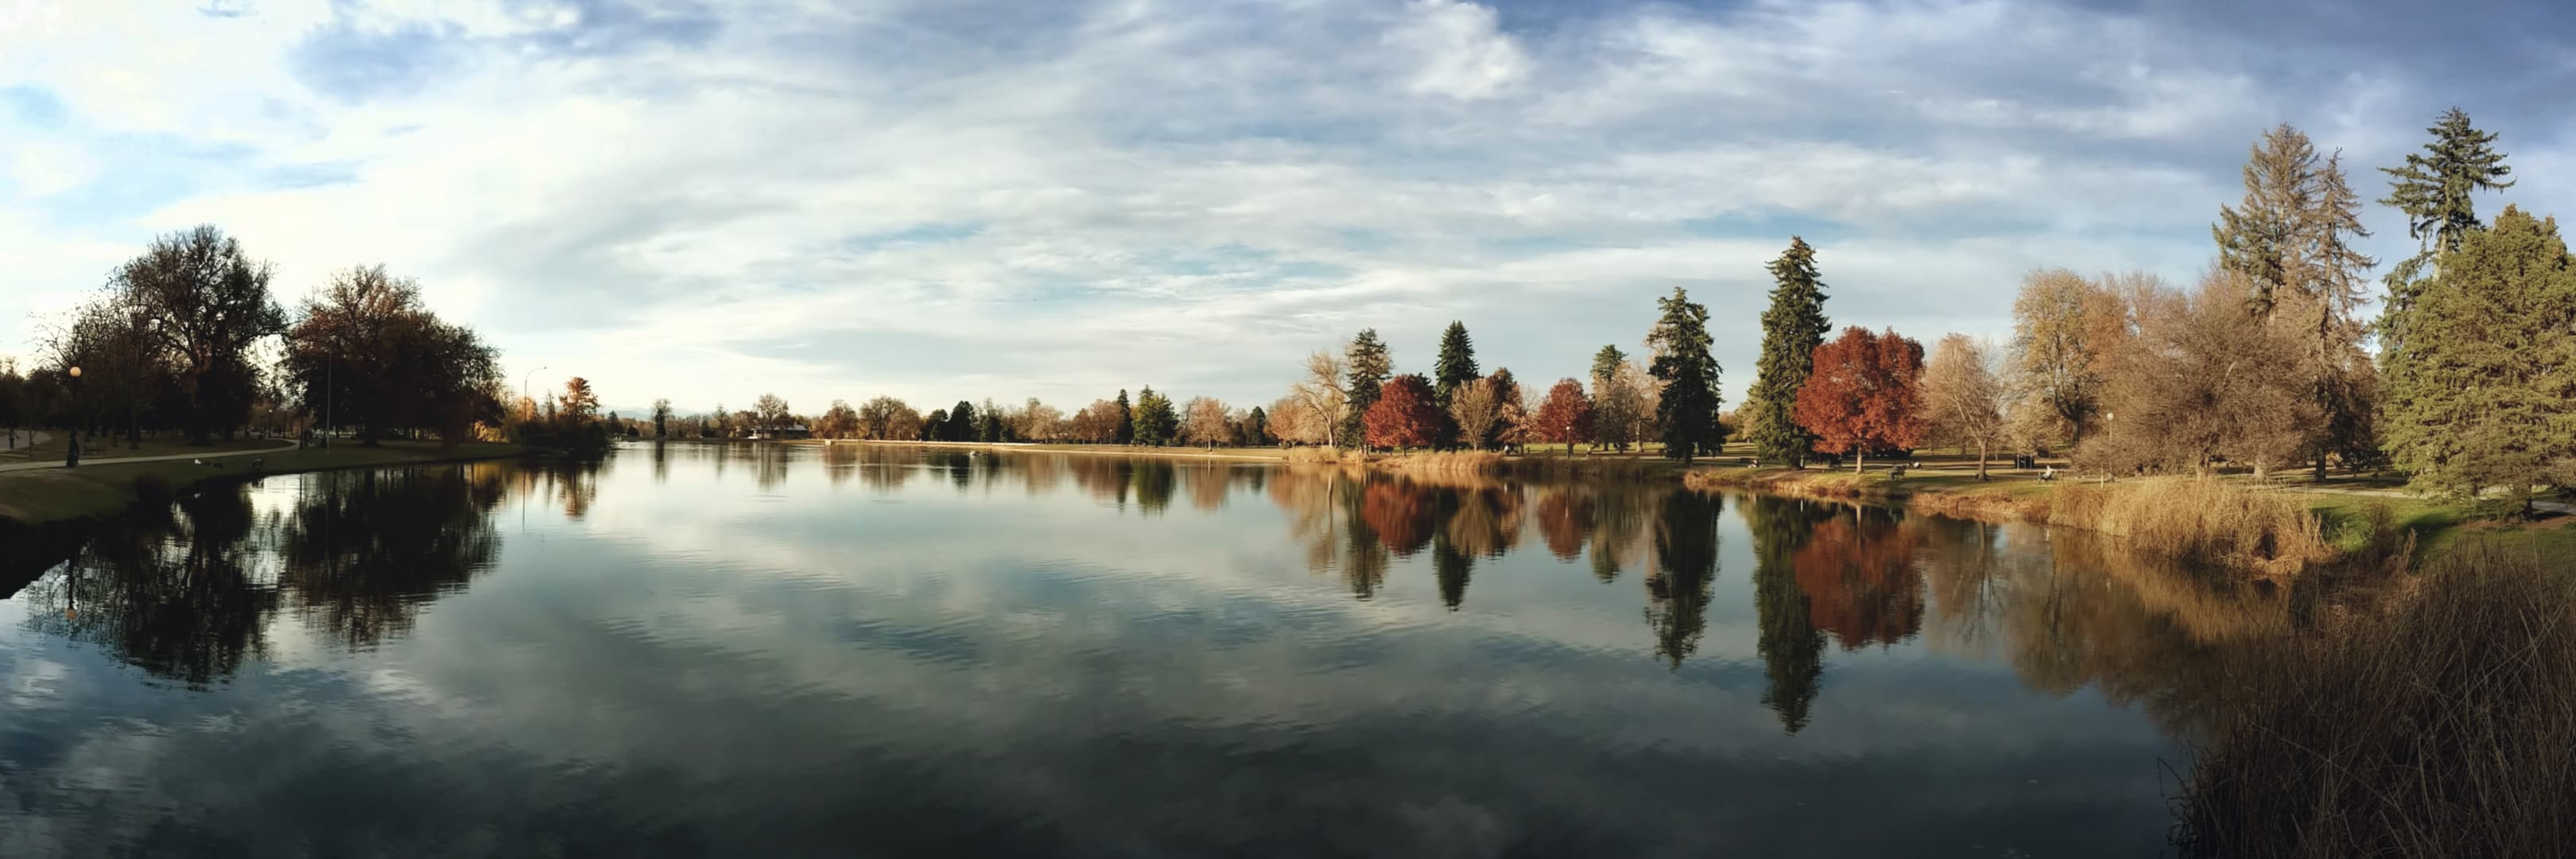 A panorama across a city lake. On the far side stand a mixture of pine trees and red- and yellow-colored deciduous trees.